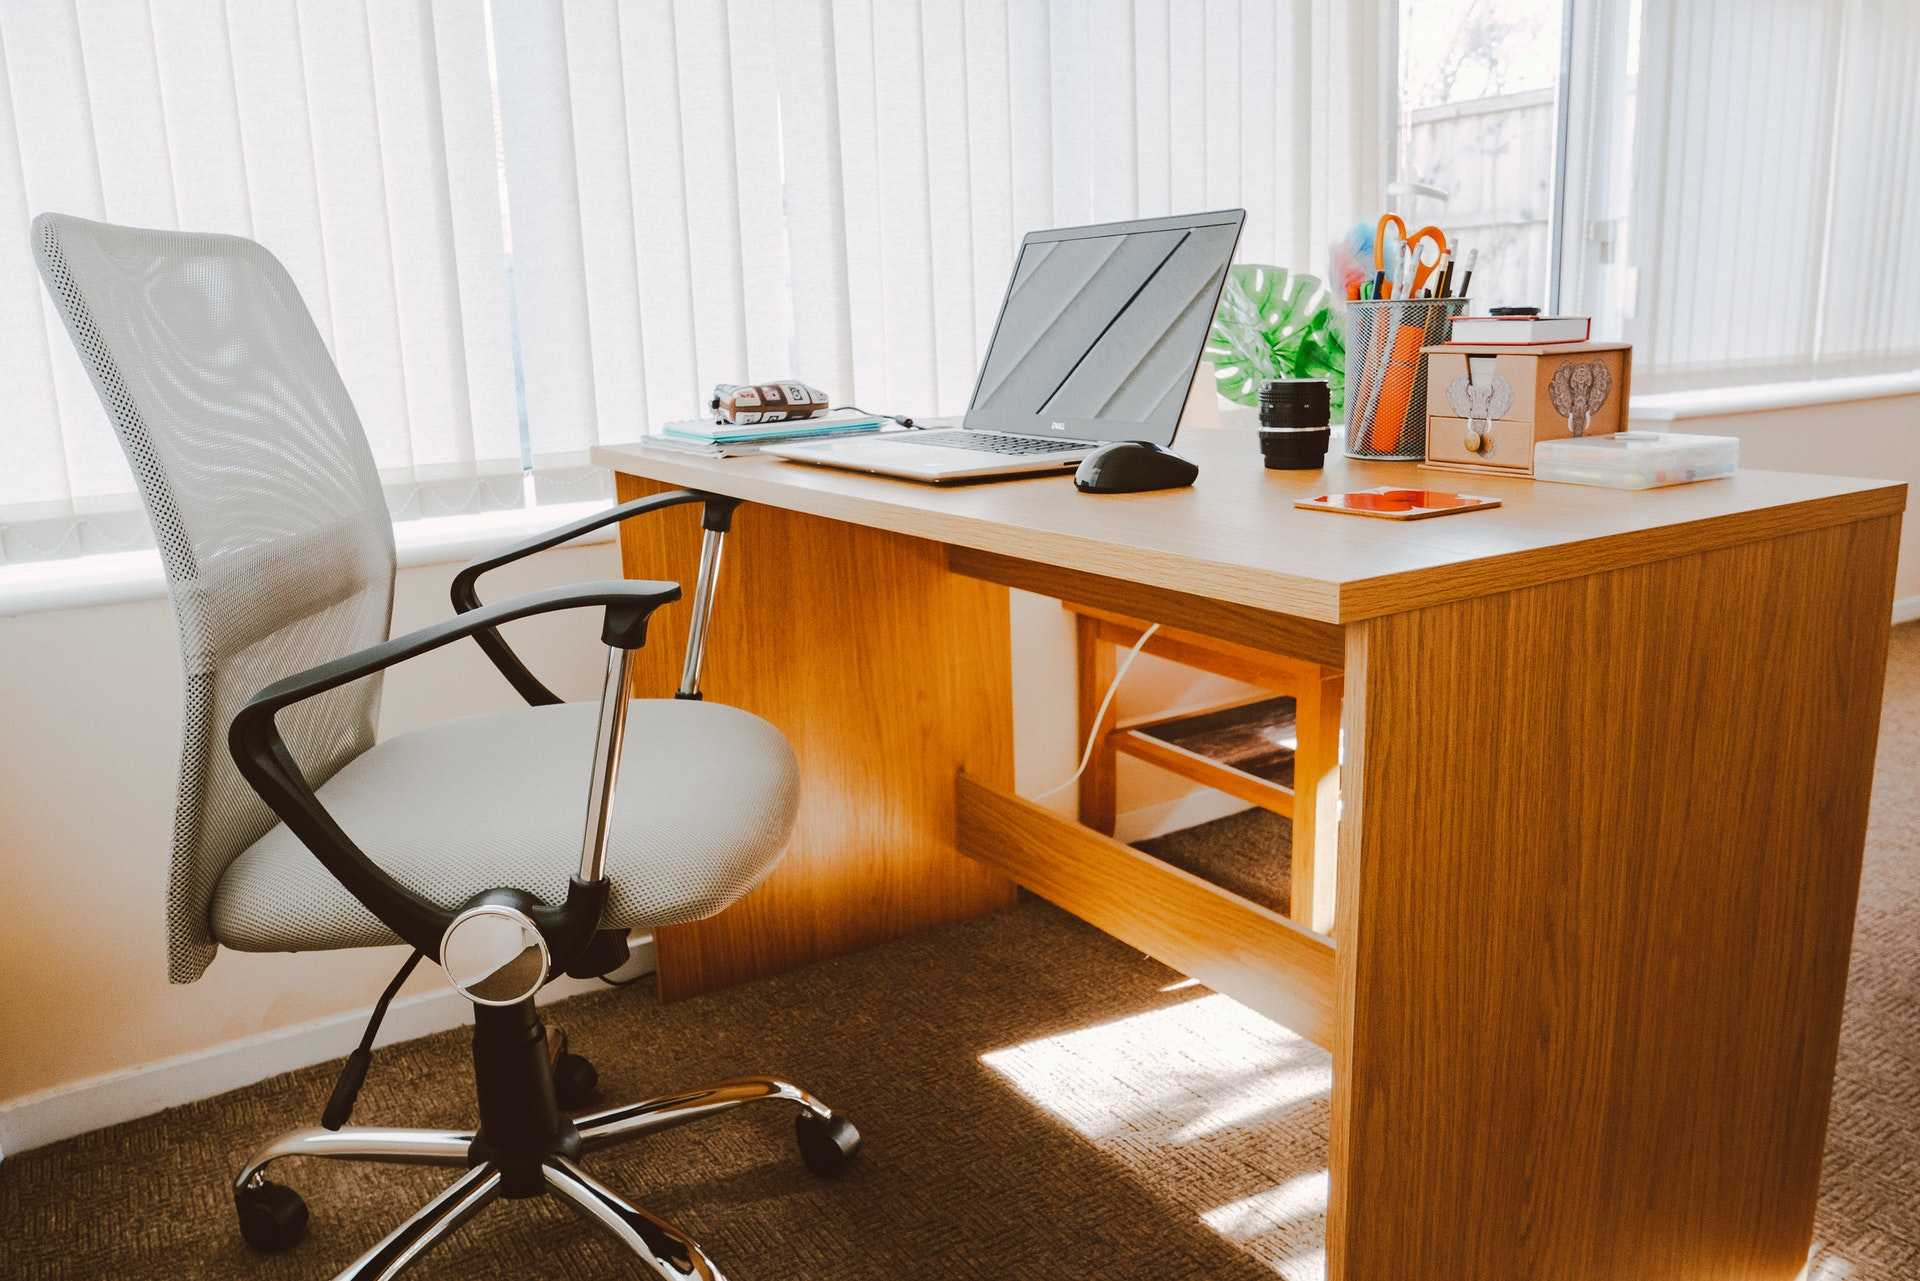 12 Best Office Chairs In India For Your Home Office 2020